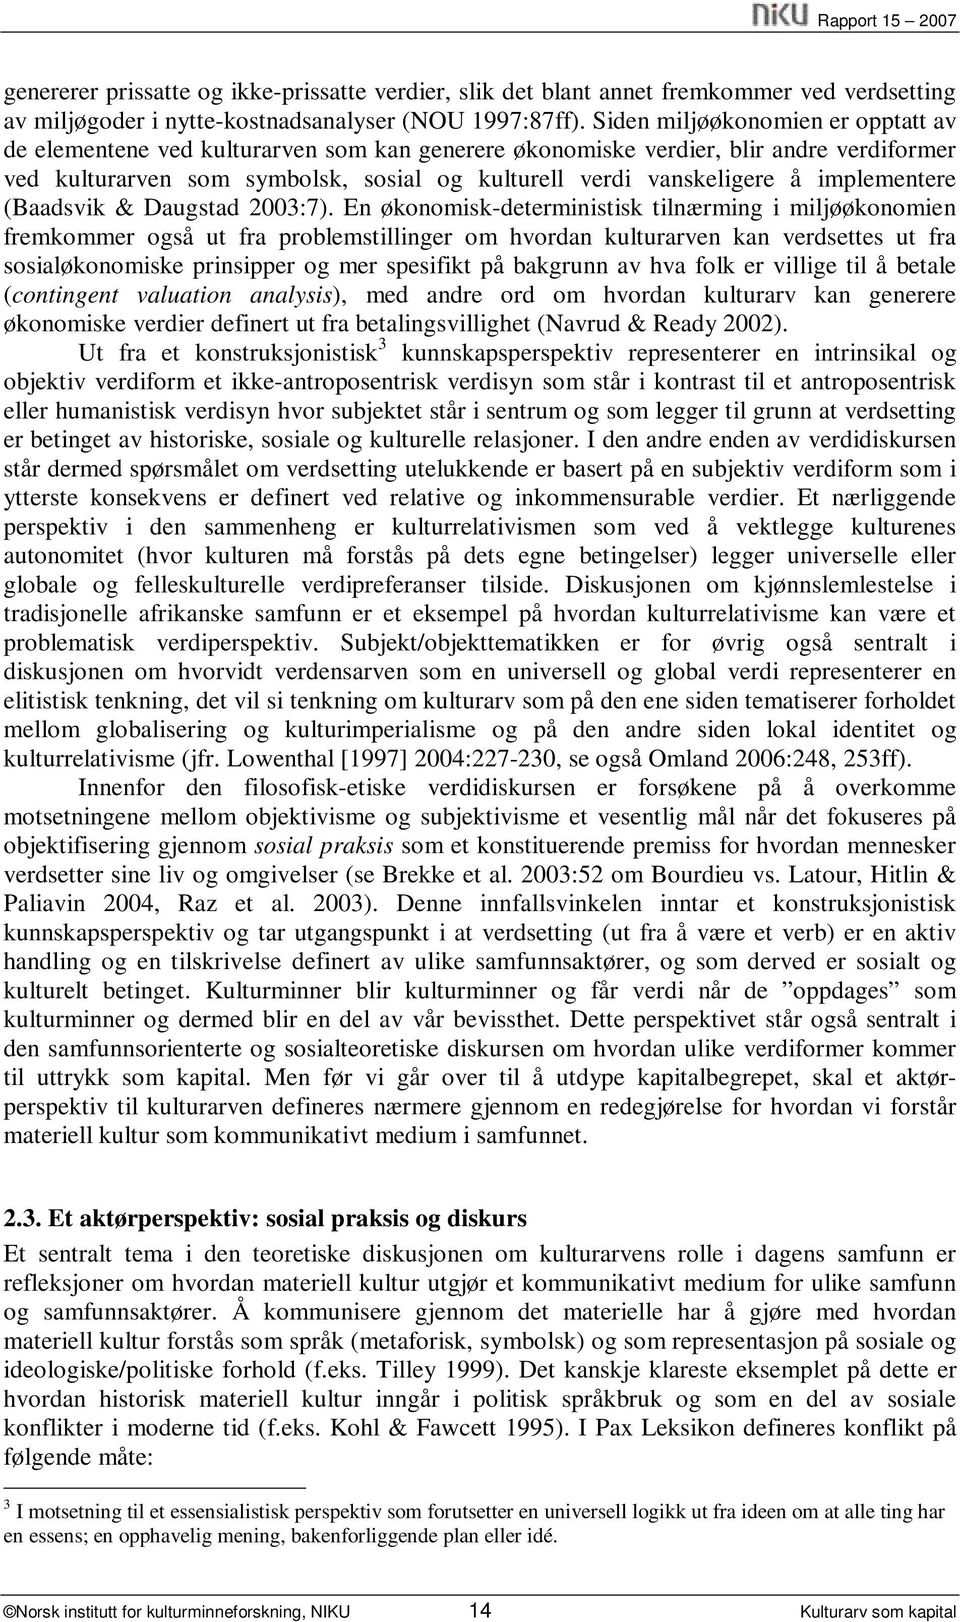 implementere (Baadsvik & Daugstad 2003:7).